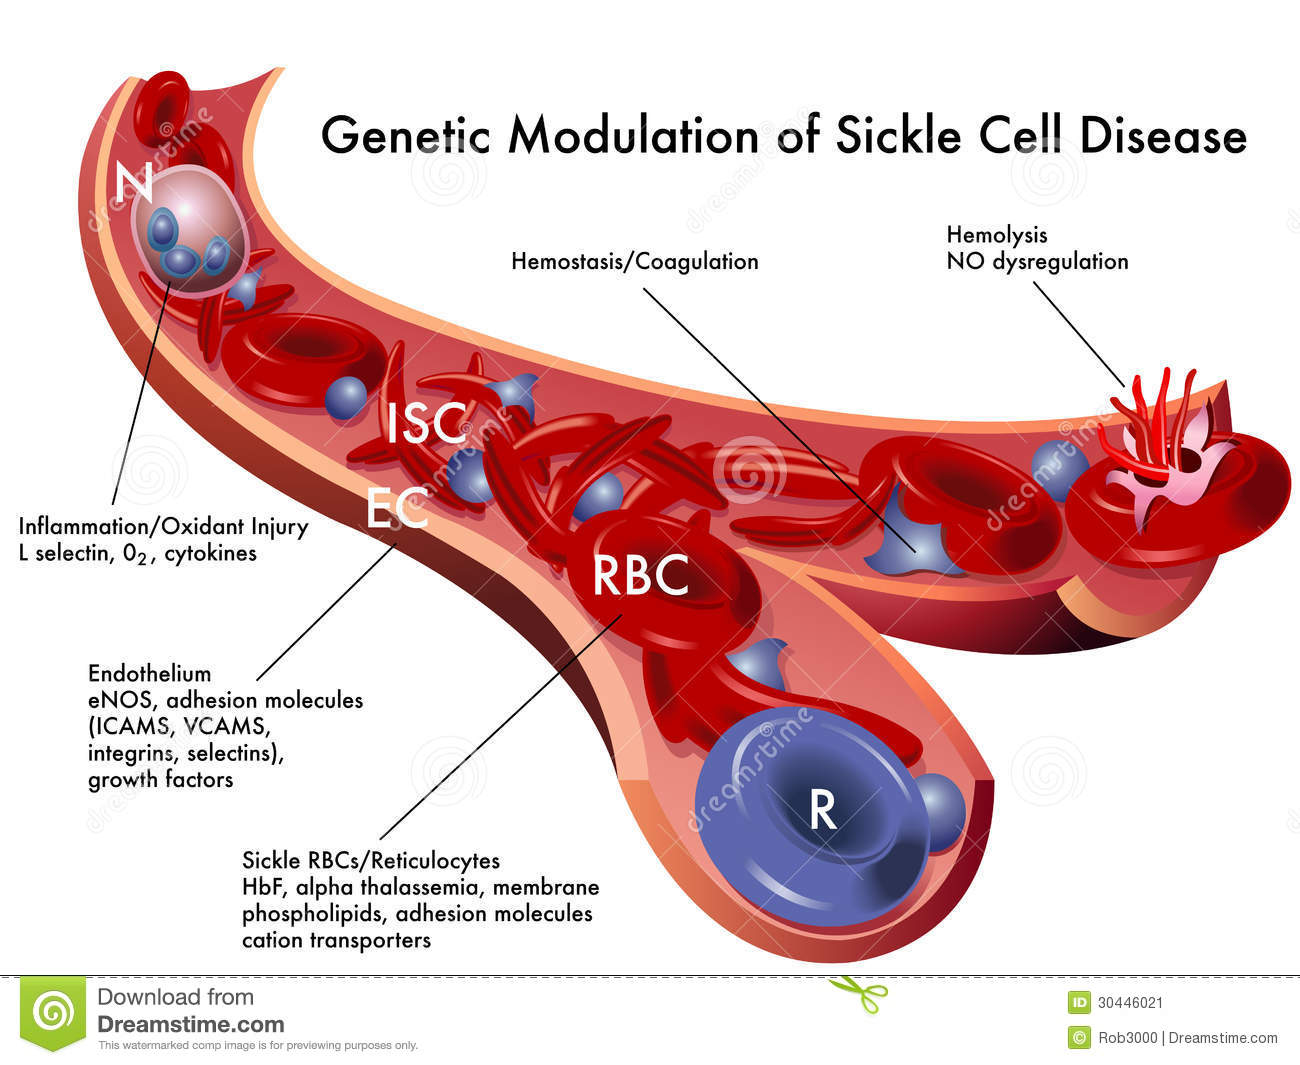 a research in the genetic disorder sickle cell disease Sickle cell disease definition sickle cell disease is an autosomal recessive blood disorder that can lead to anaemia it is caused by a mutation in the haemoglobin gene, which leads to deformation of red blood cells deformed red blood cells can obstruct small vessels and they are prone to destruction.